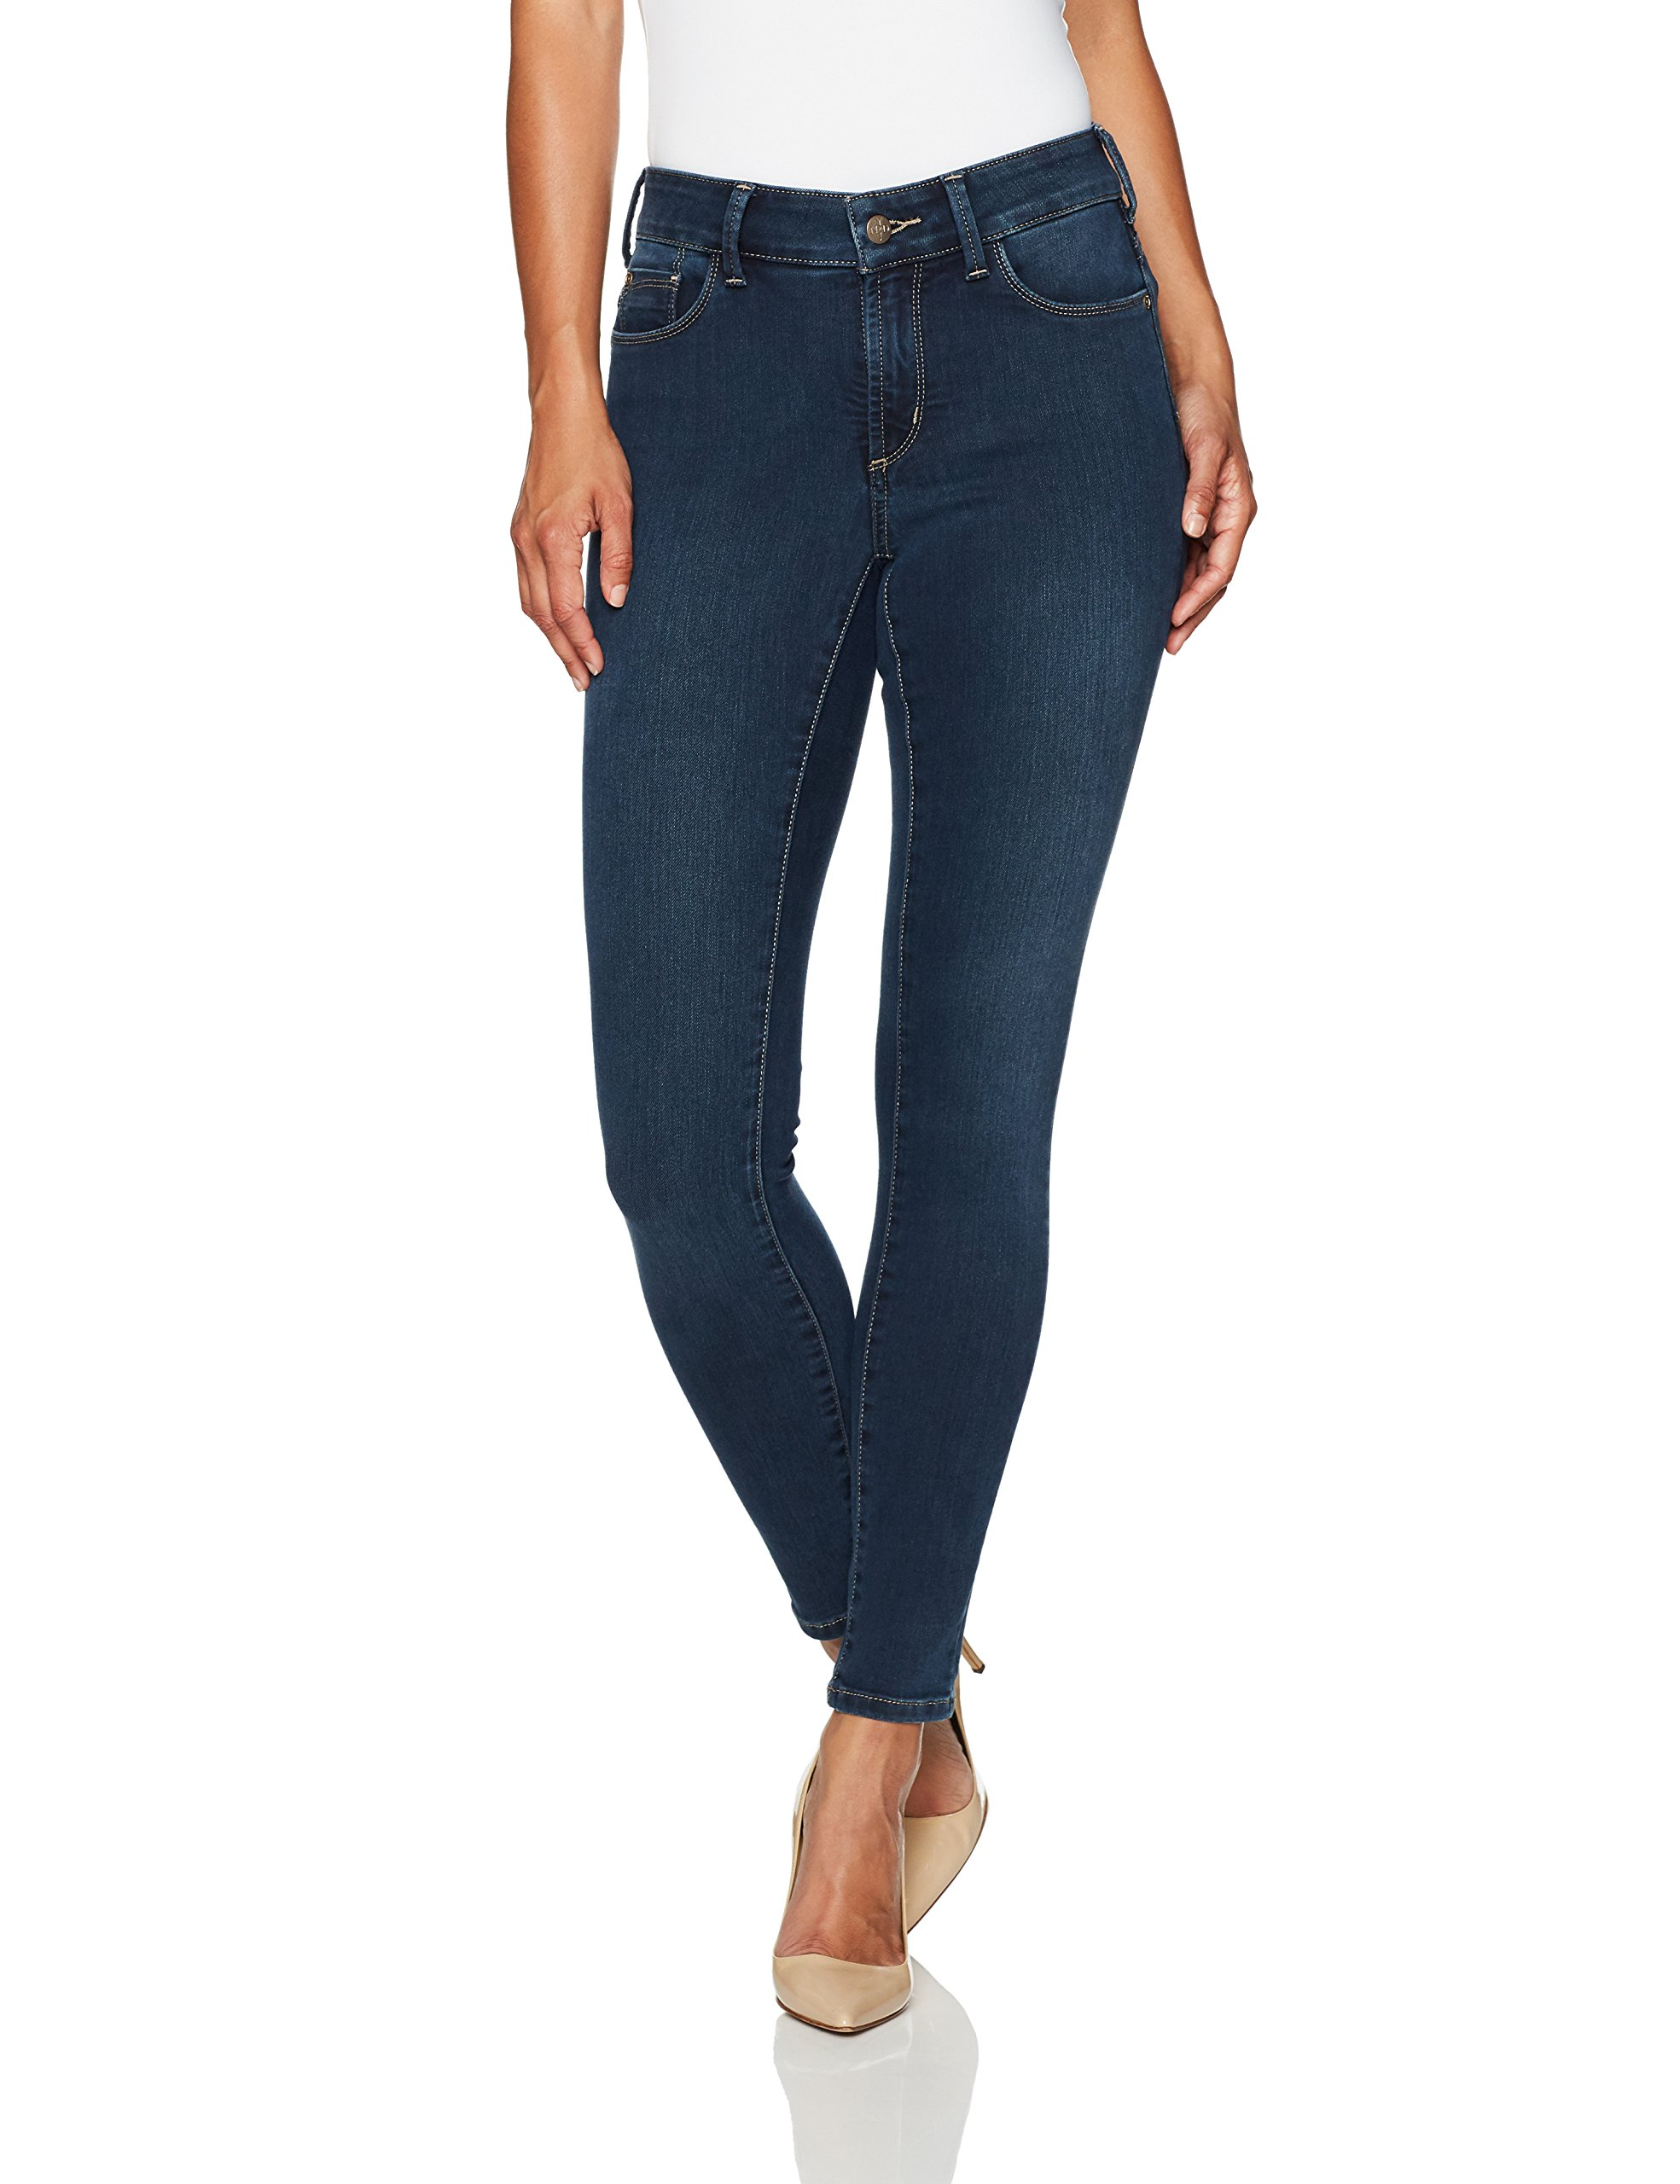 NYDJ Women's Petite Size Uplift Alina Skinny Jeans in Future Fit Denim, Rome, 6P